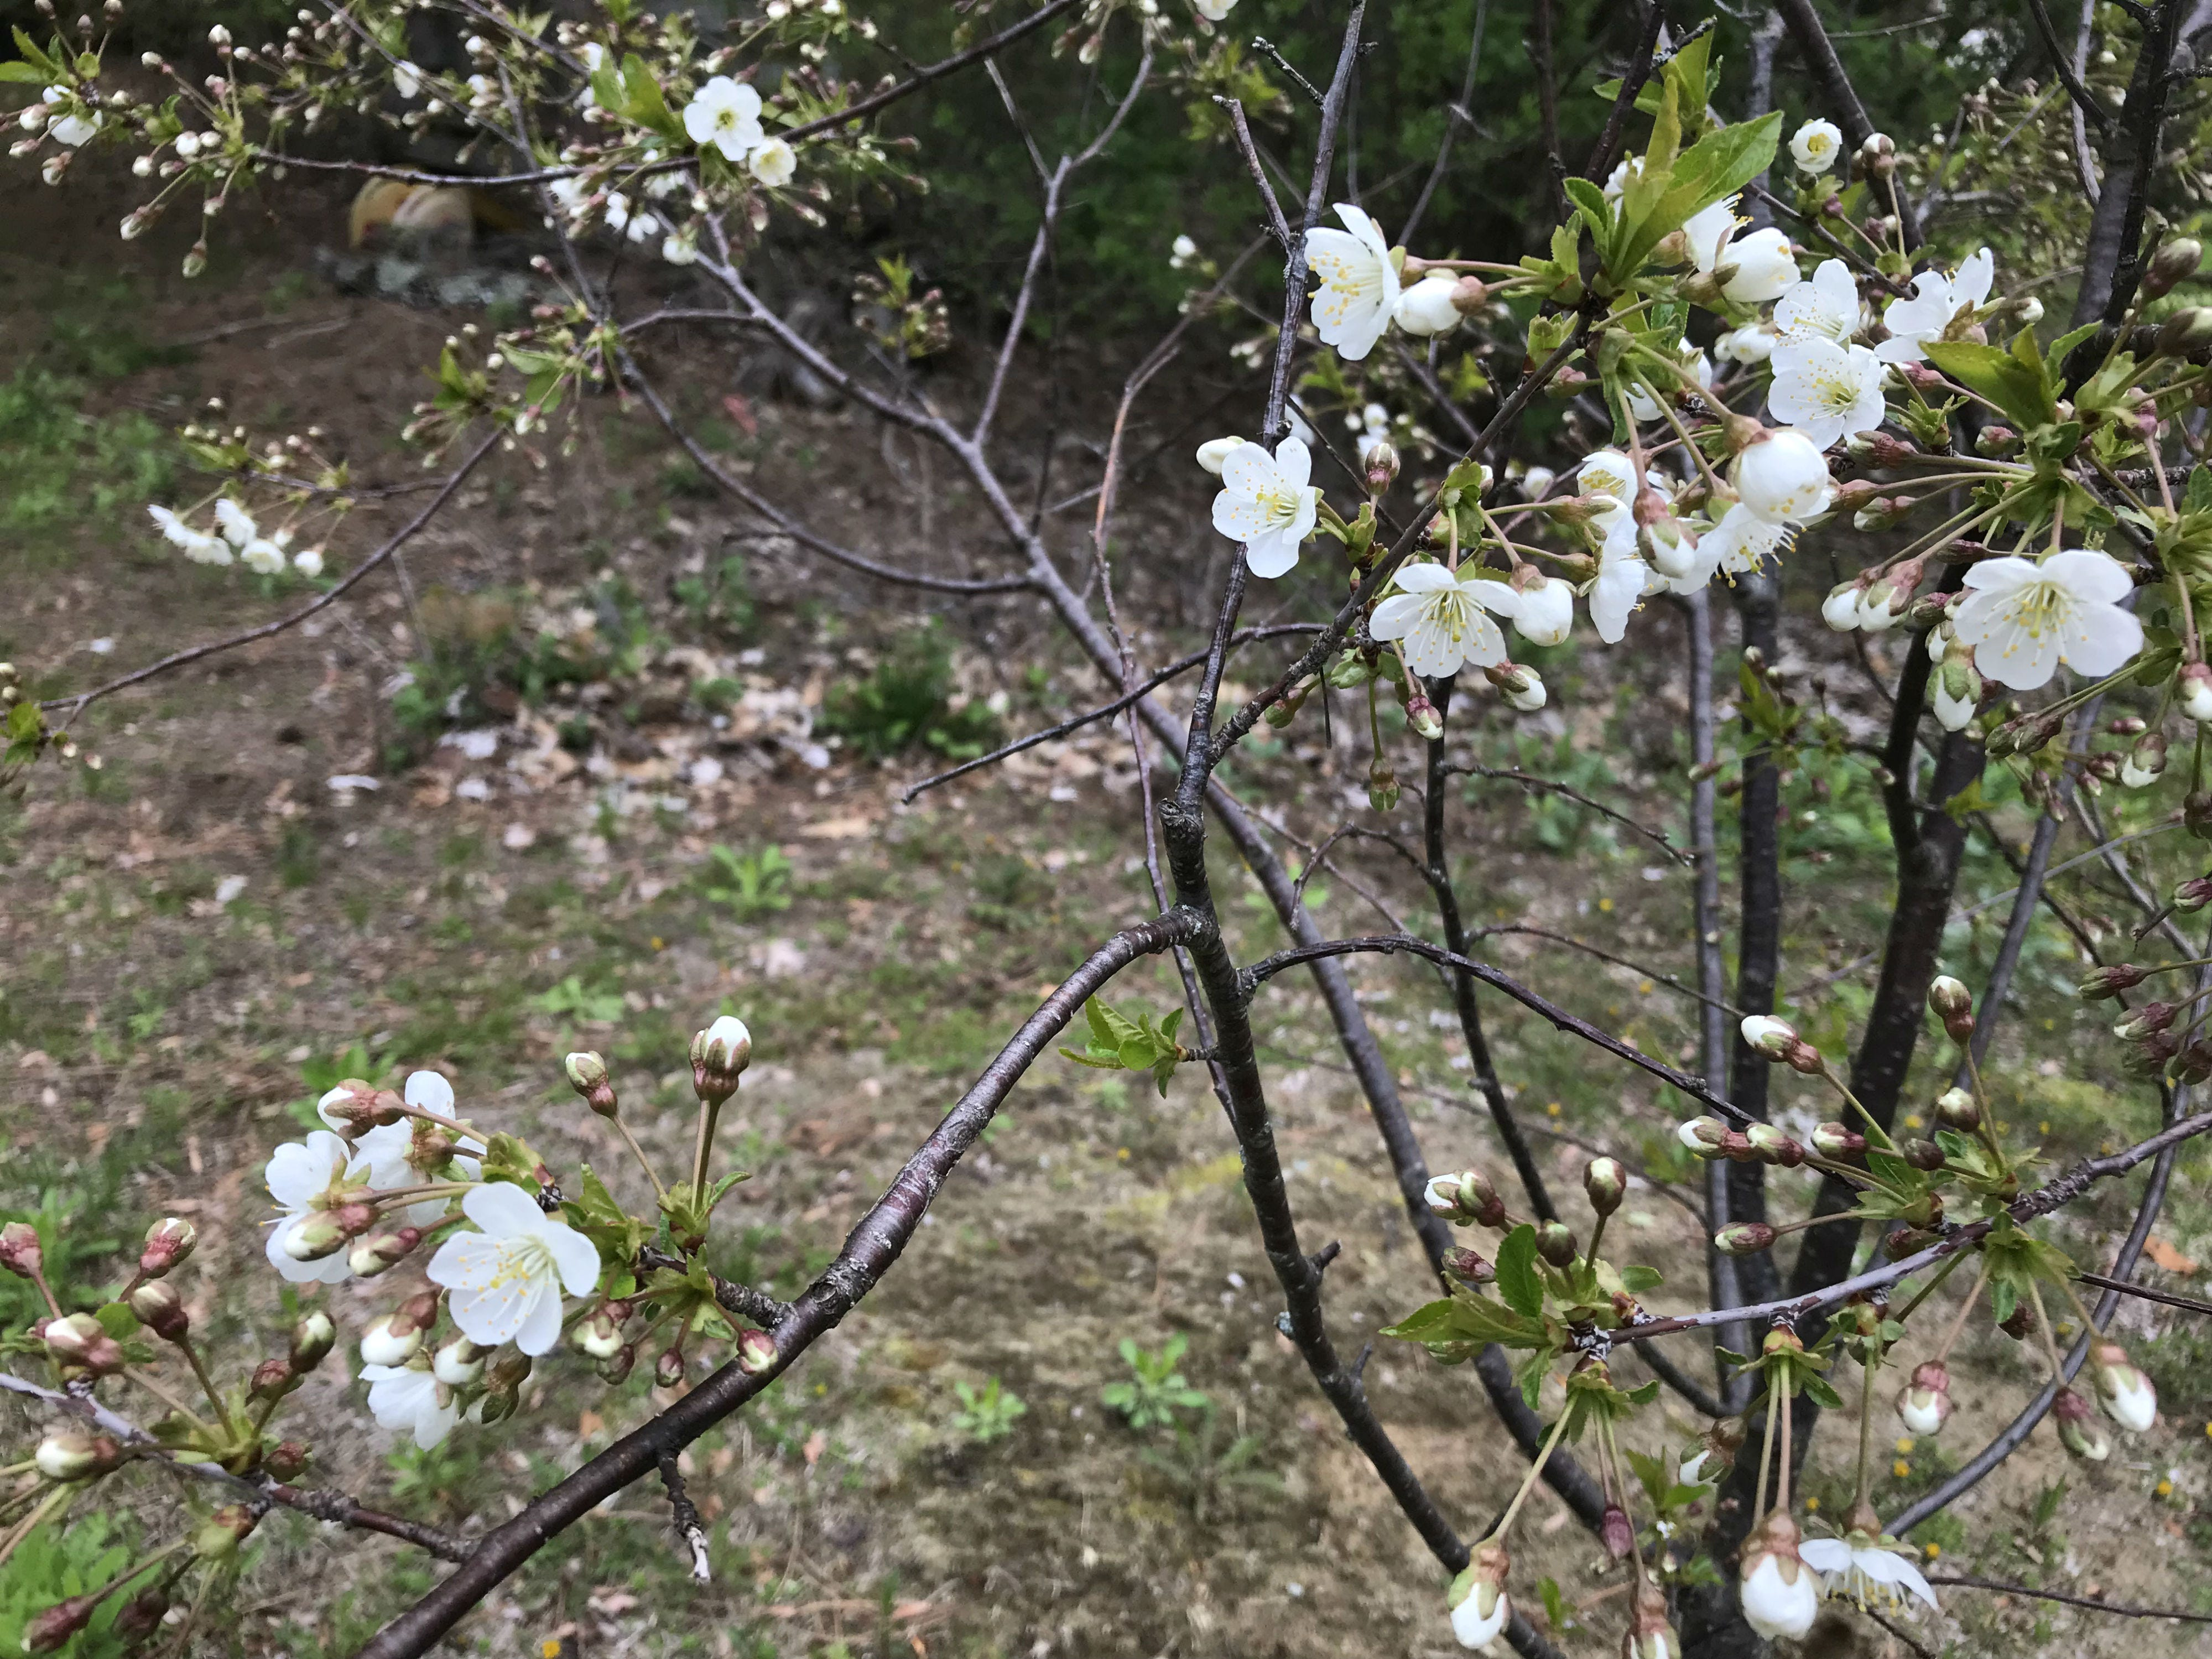 Cherry blossoms make an appearance in South Burlington on Monday, May 13, 2019.